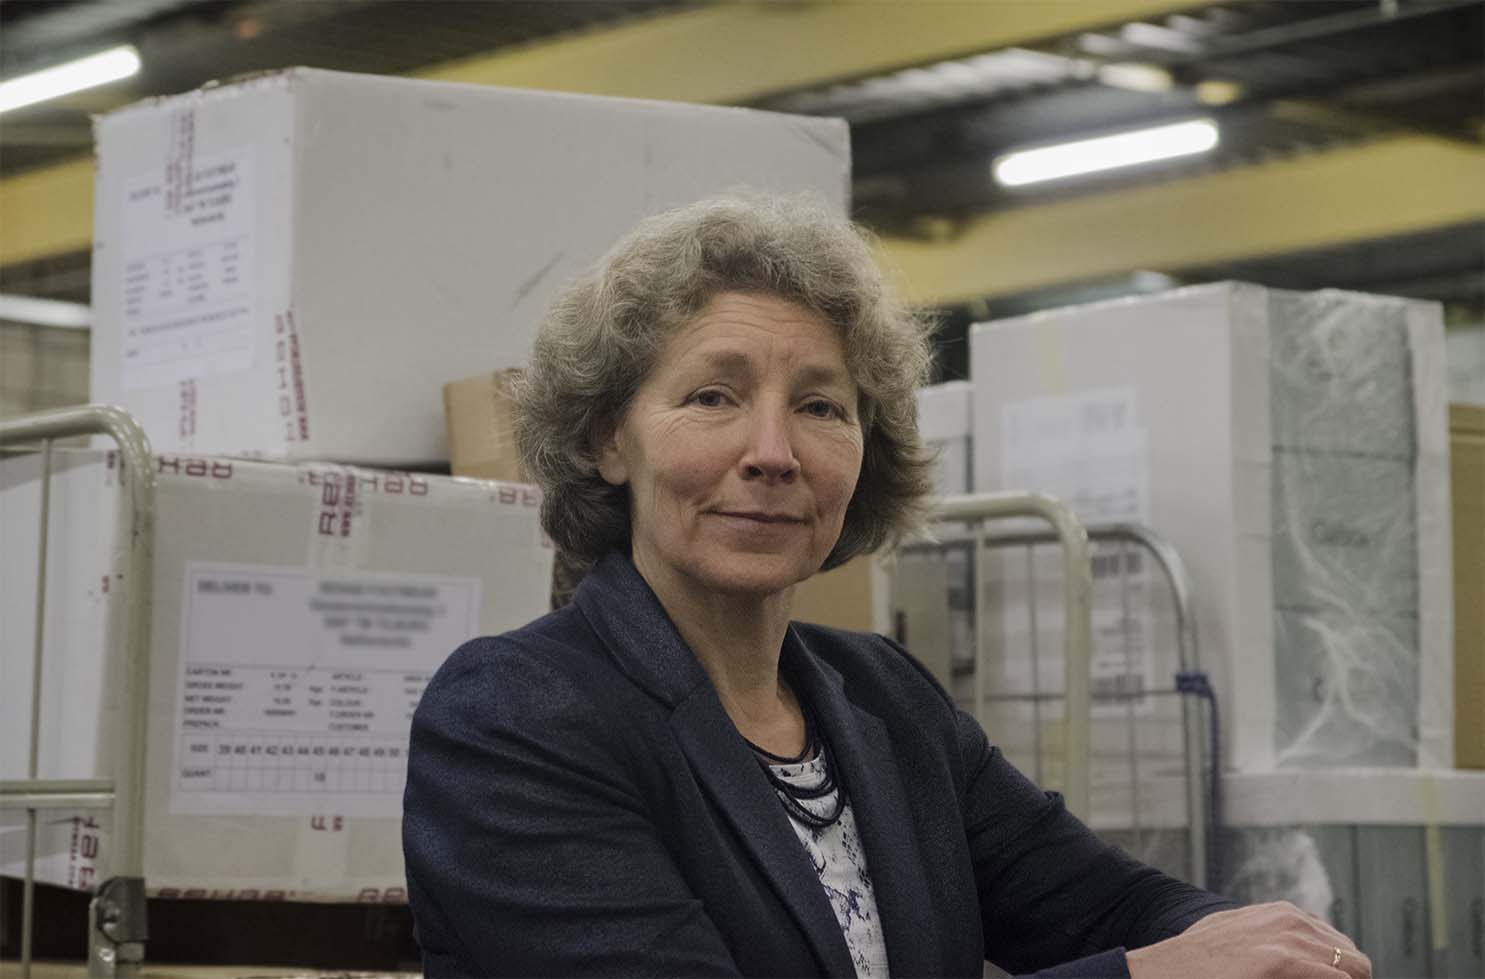 A photo of Birgit Hendriks in a delivery warehouse in front of packages.